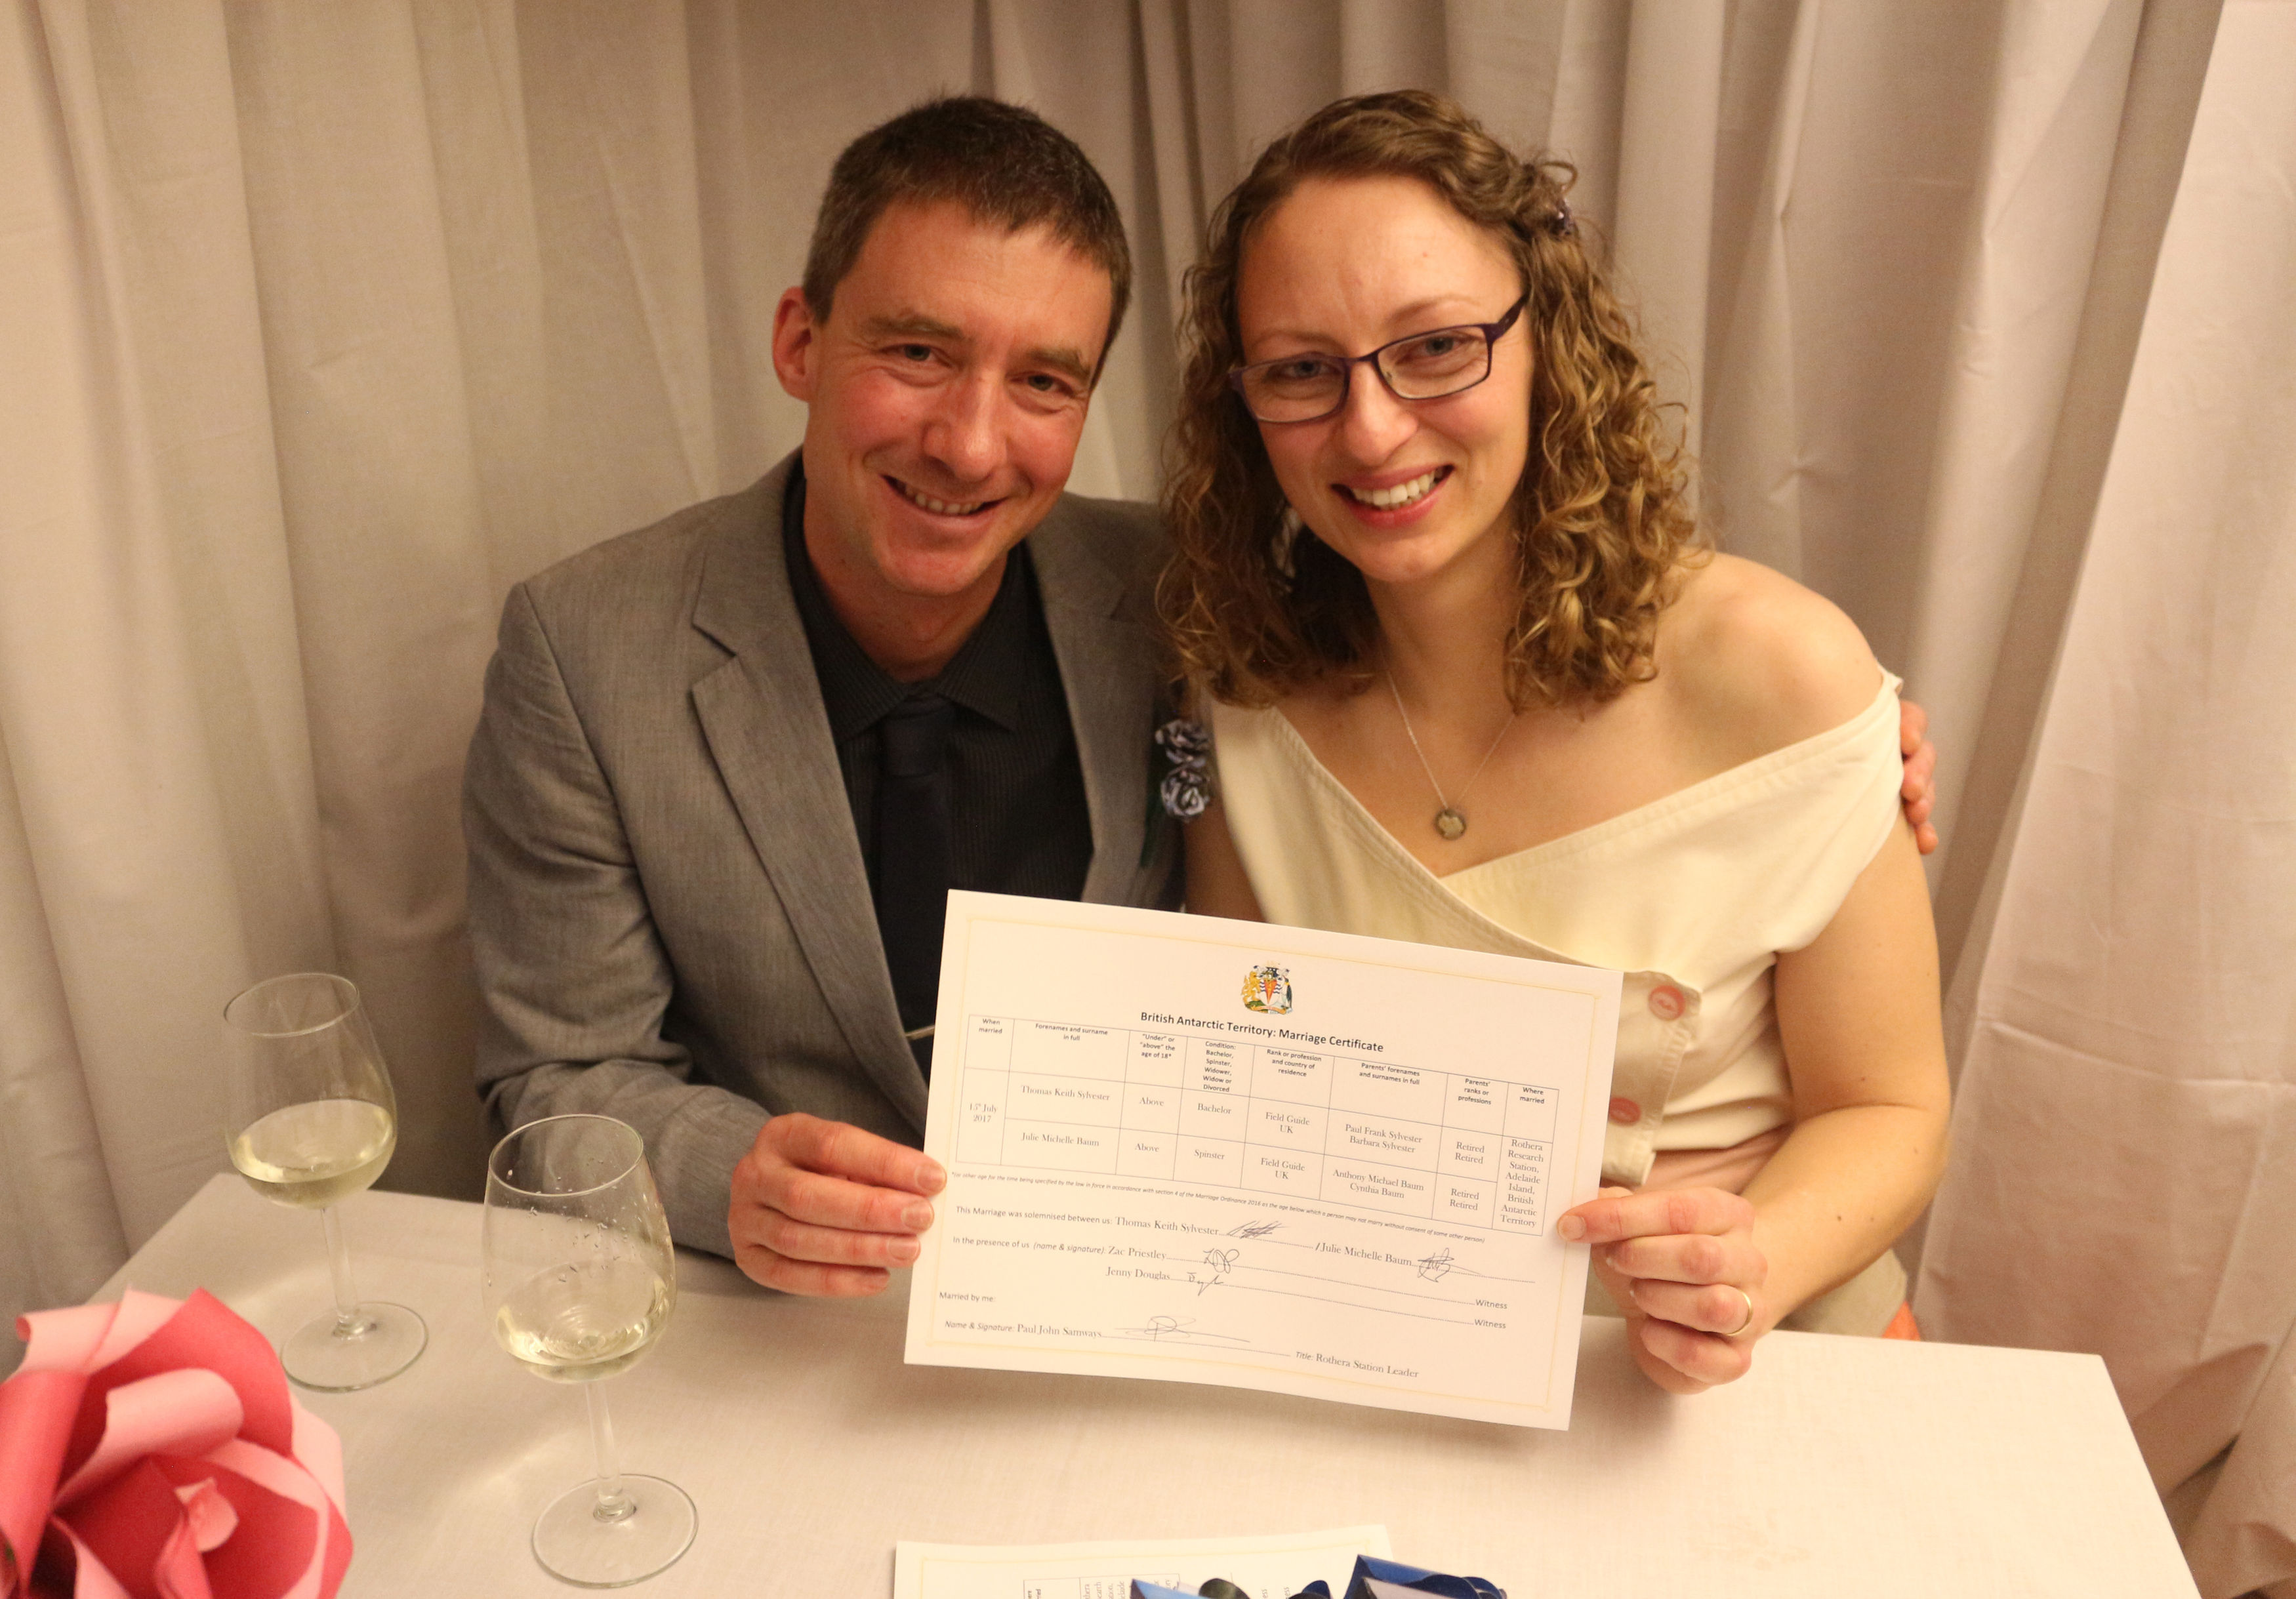 The couple with their certificate